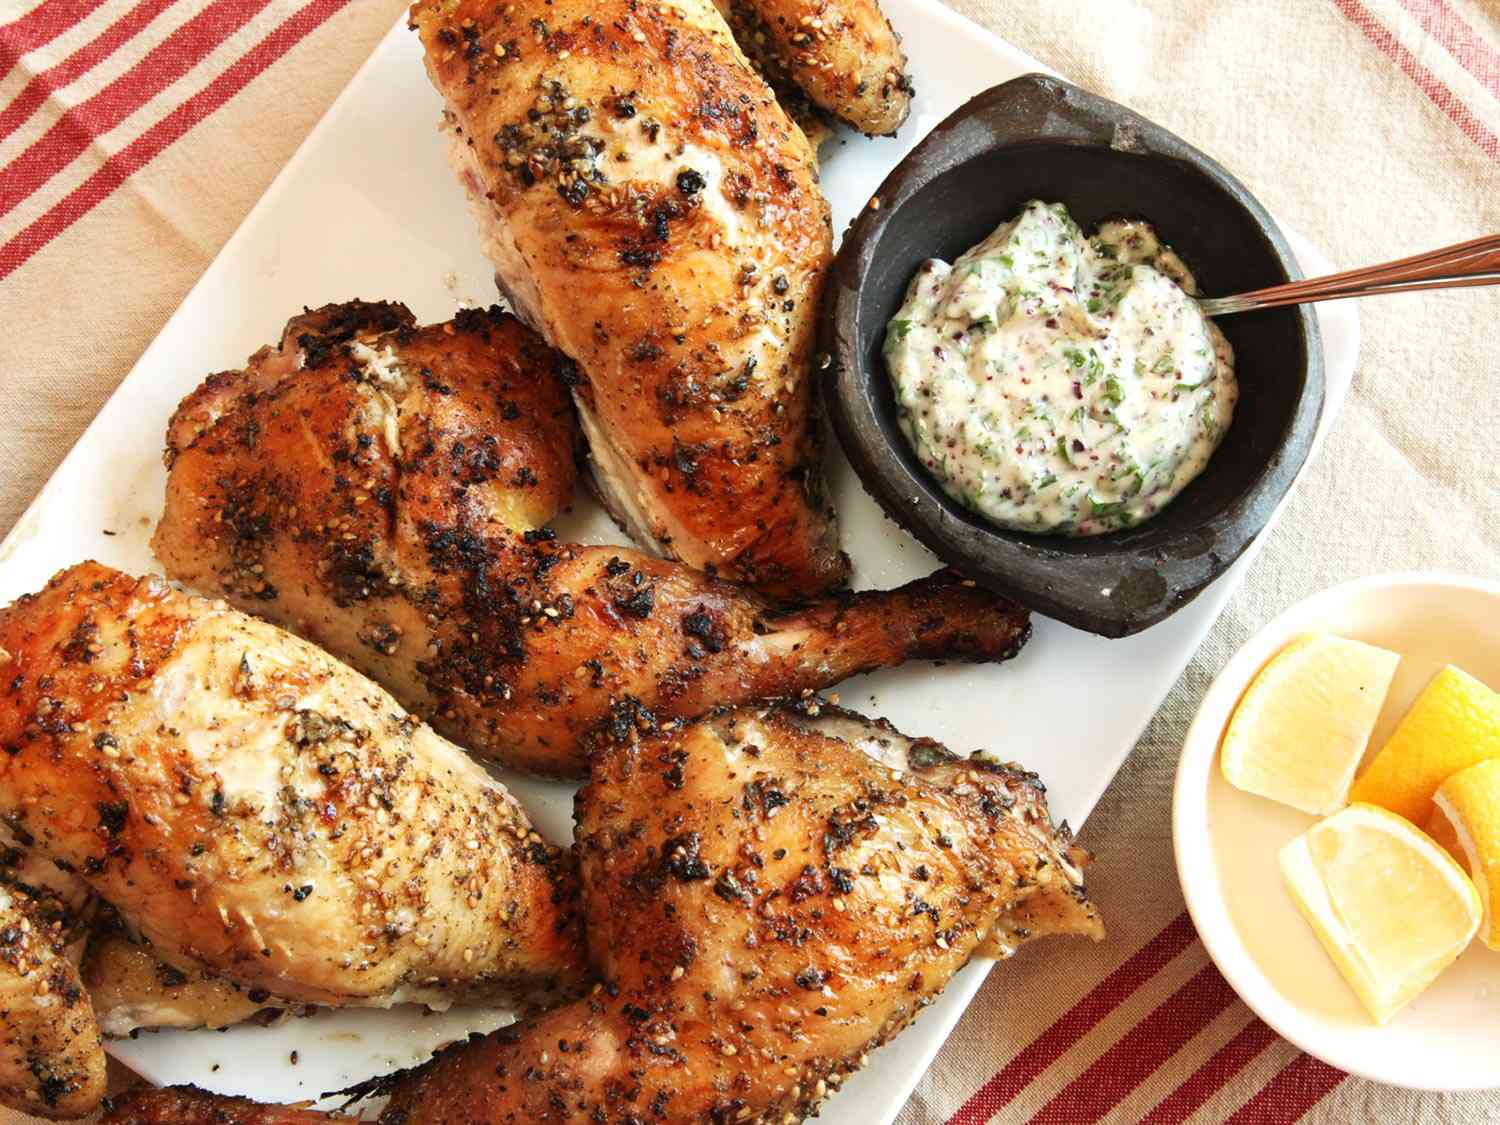 Grilled chicken rubbed with za'atar (Middle Eastern spice blend), next to lemon wedges and a sauce for dipping